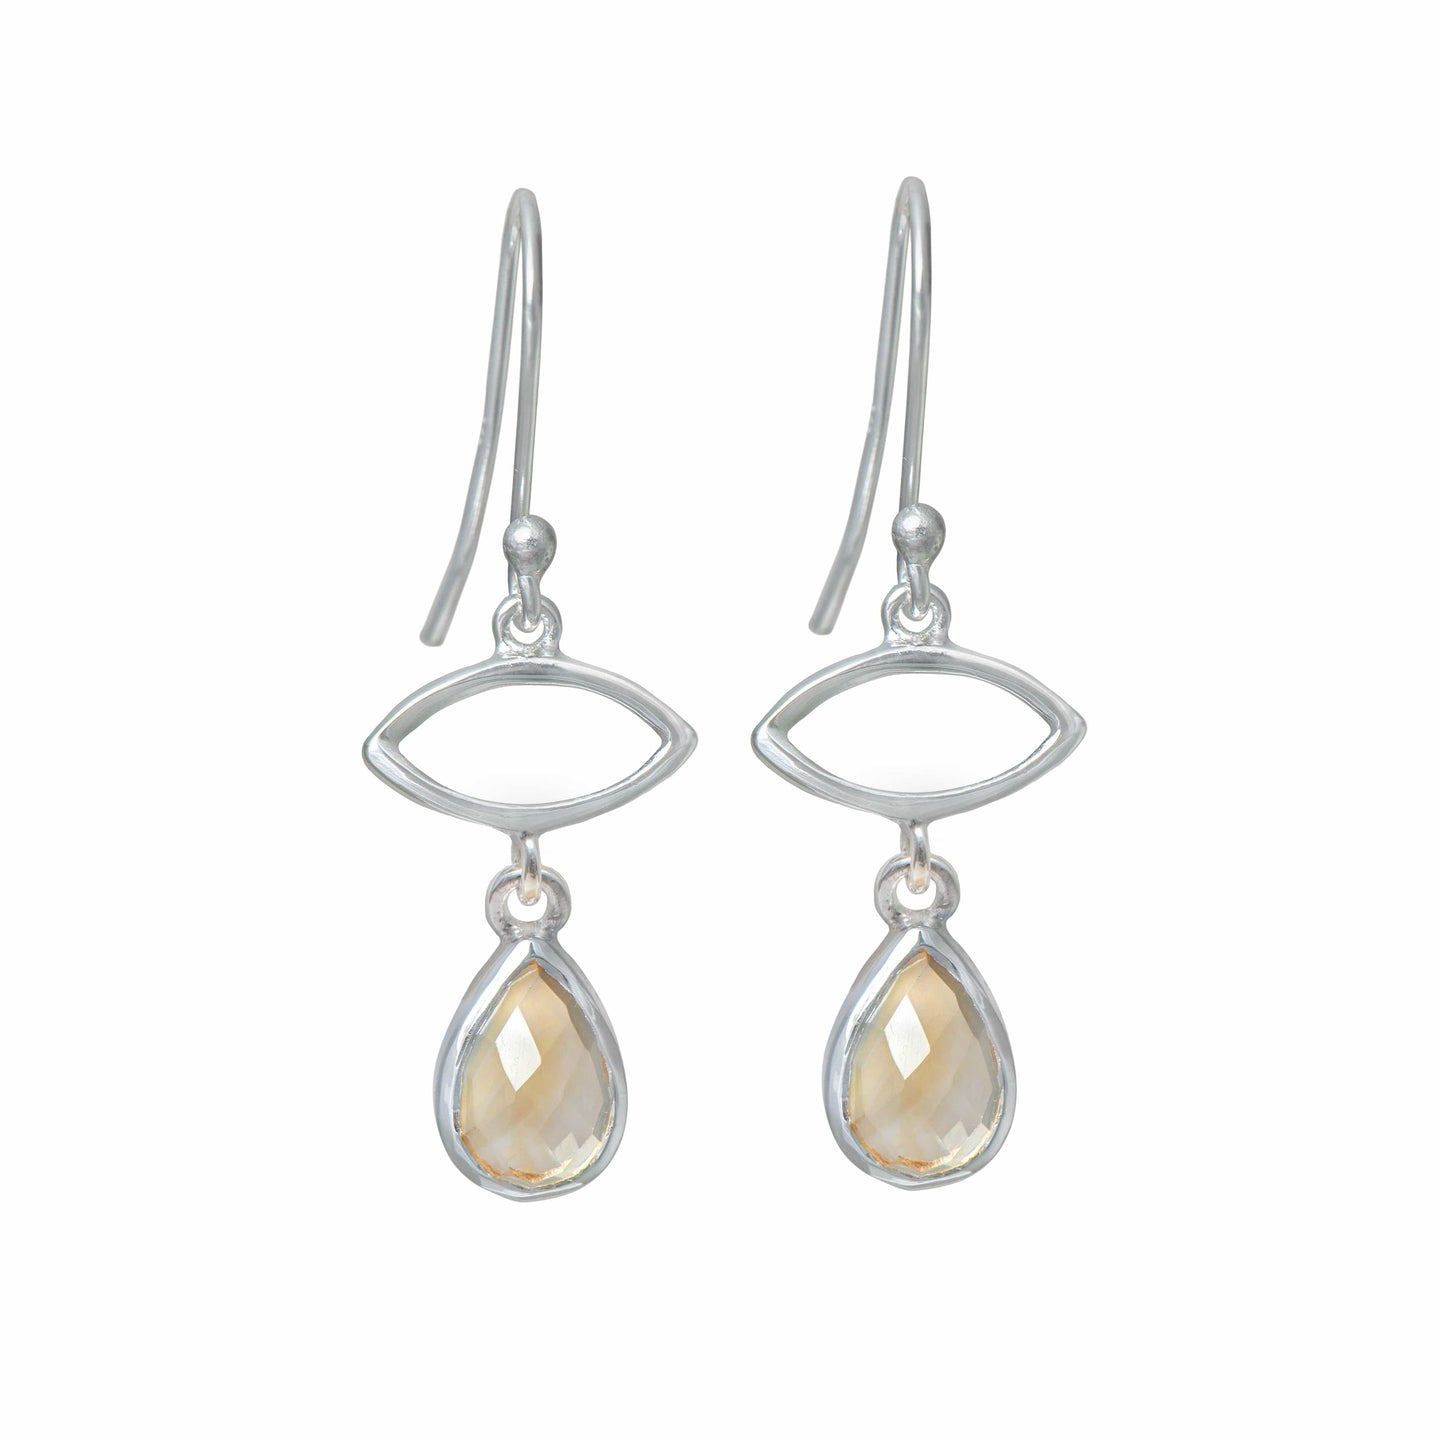 Silver Drop Earrings with Citrine Gemstone